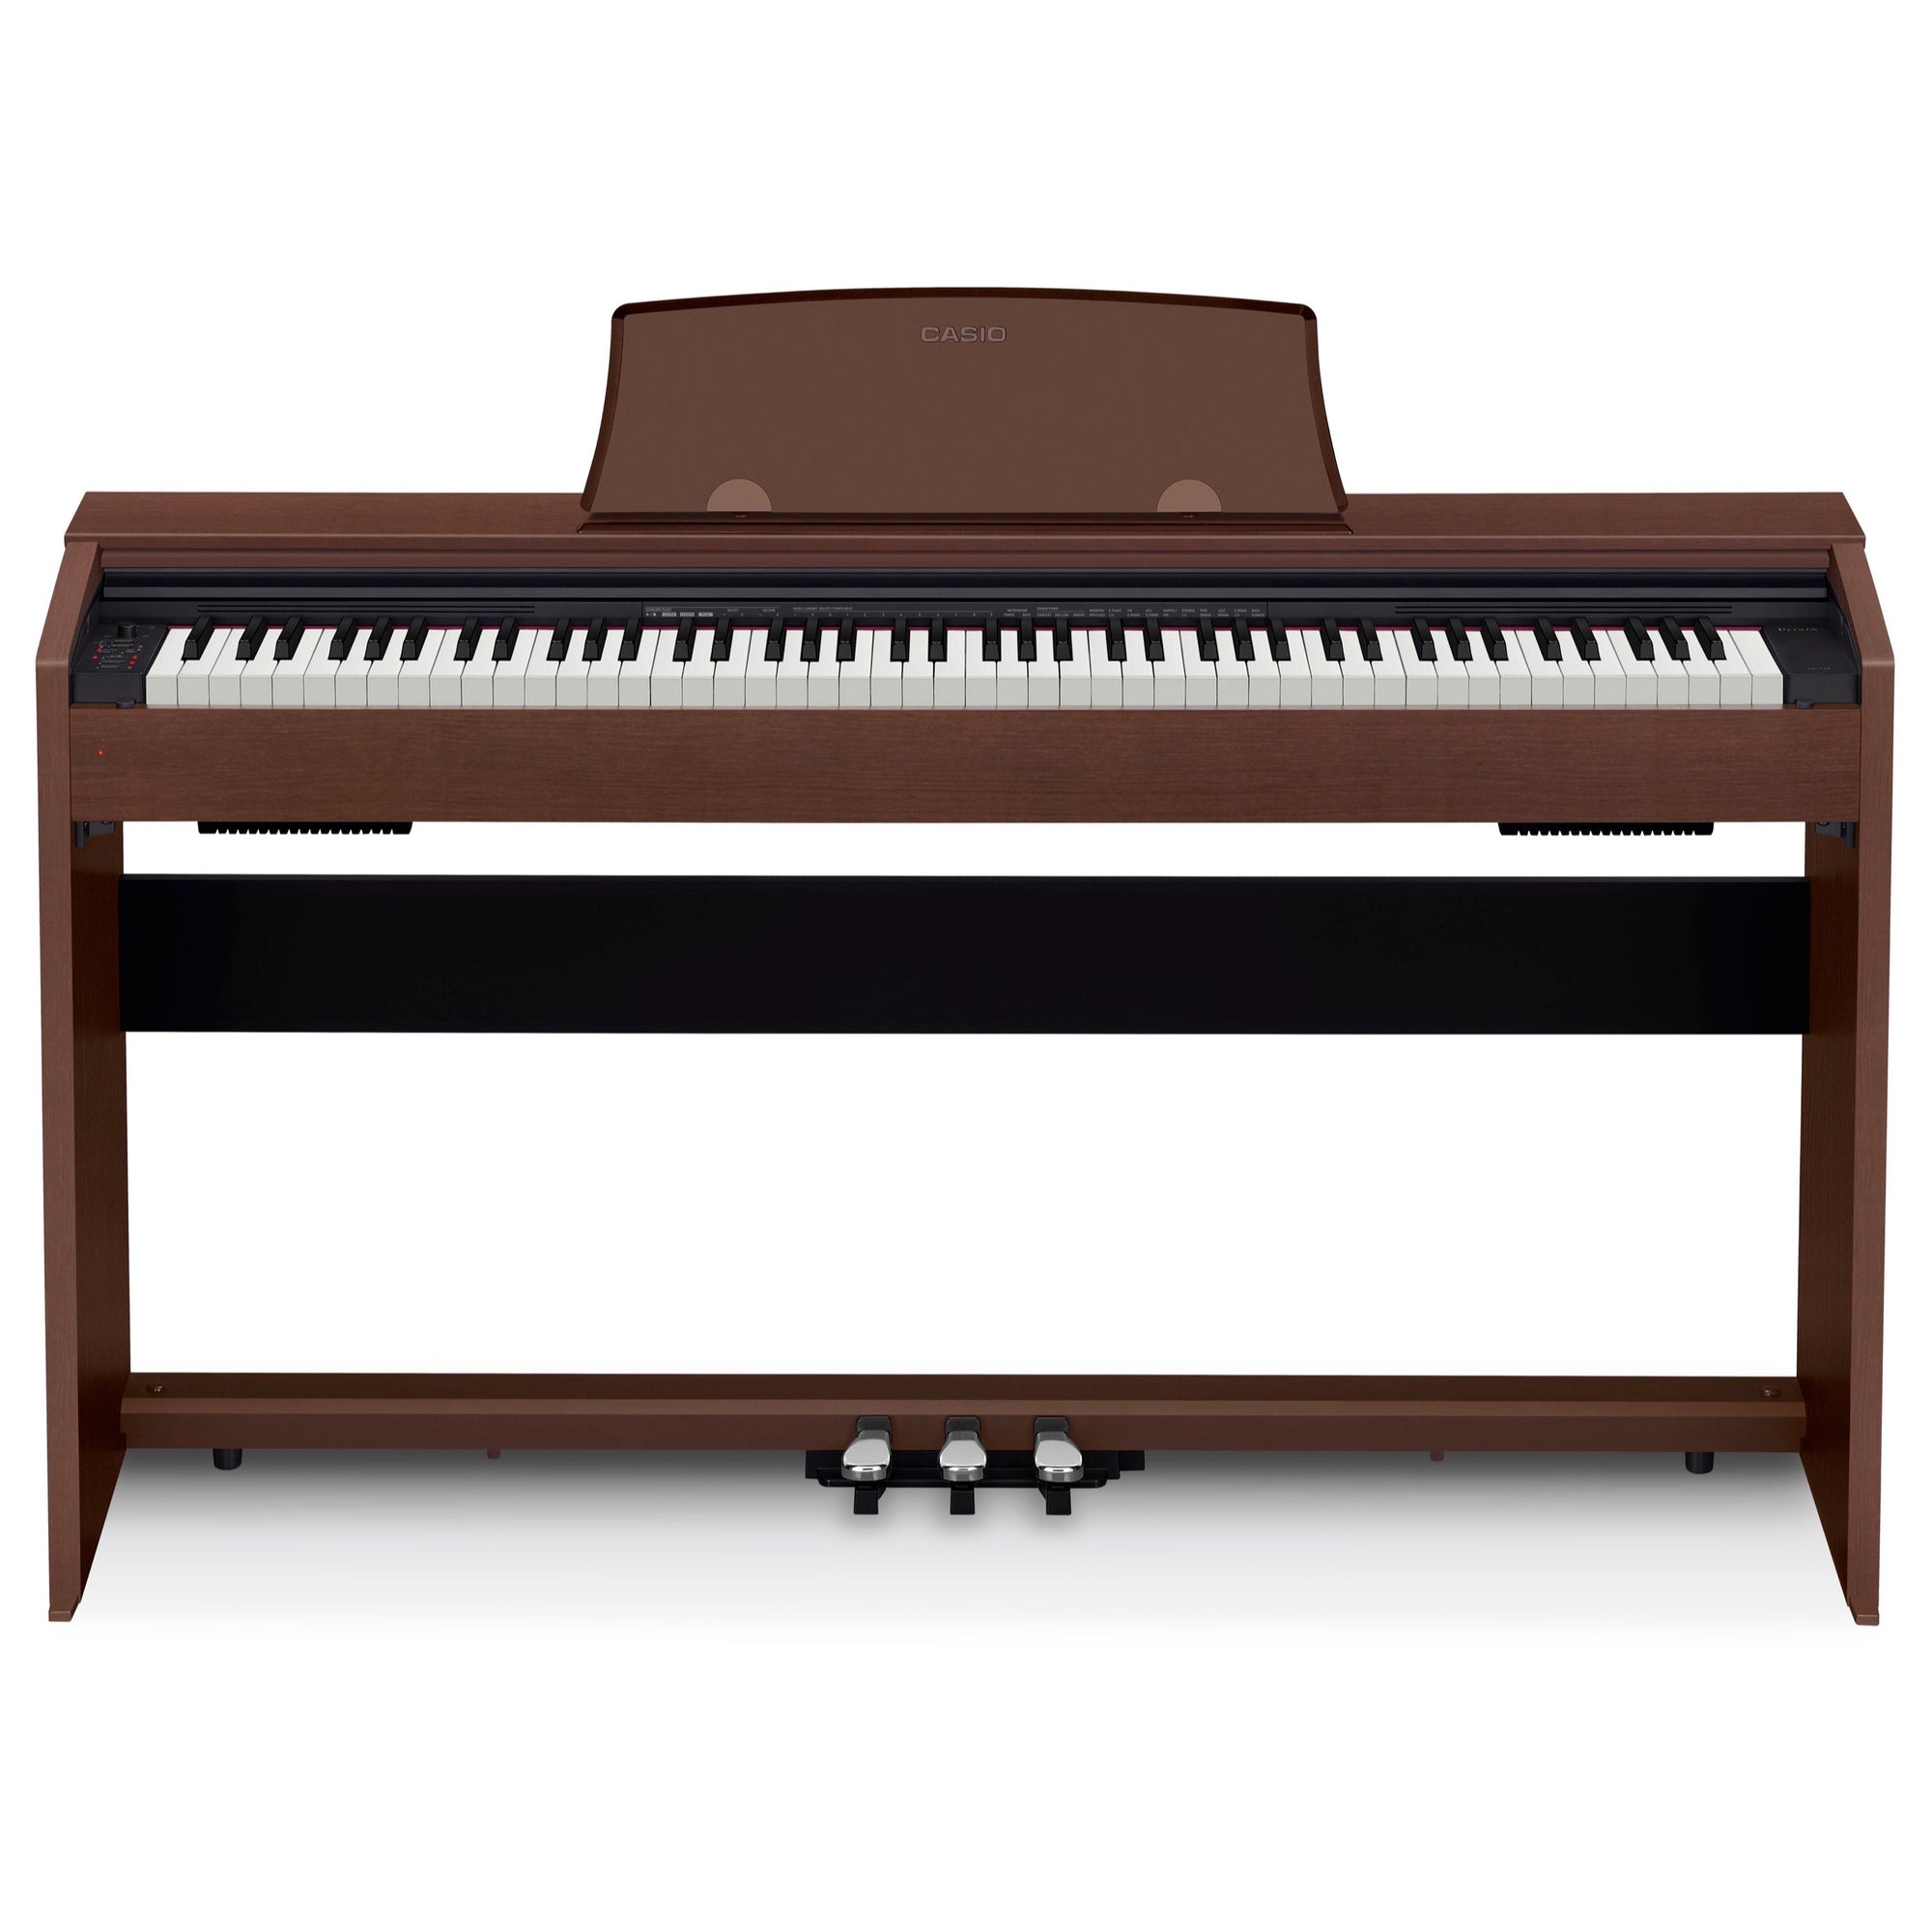 Casio PX-770 Privia Digital Piano, Brown